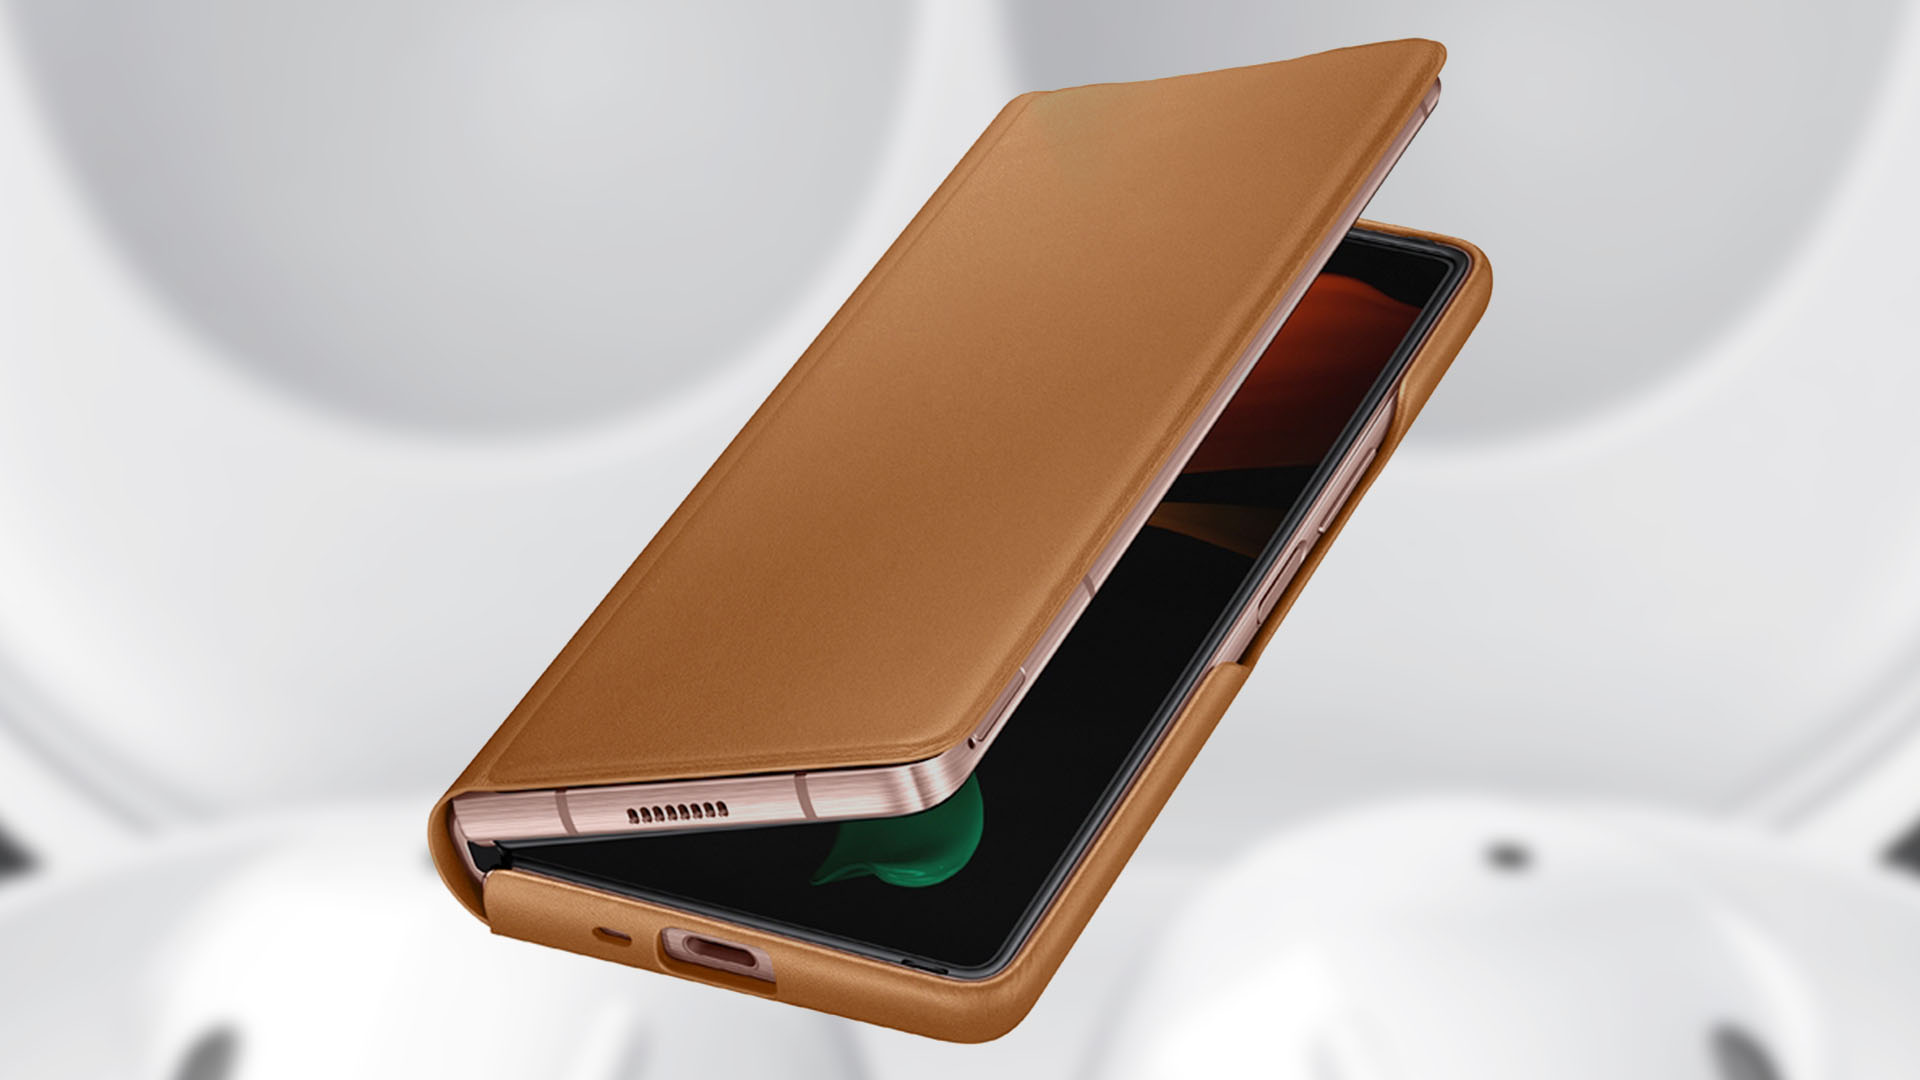 Samsung launches official leather covers for Galaxy Z Fold 2, Buds Live - SamMobile